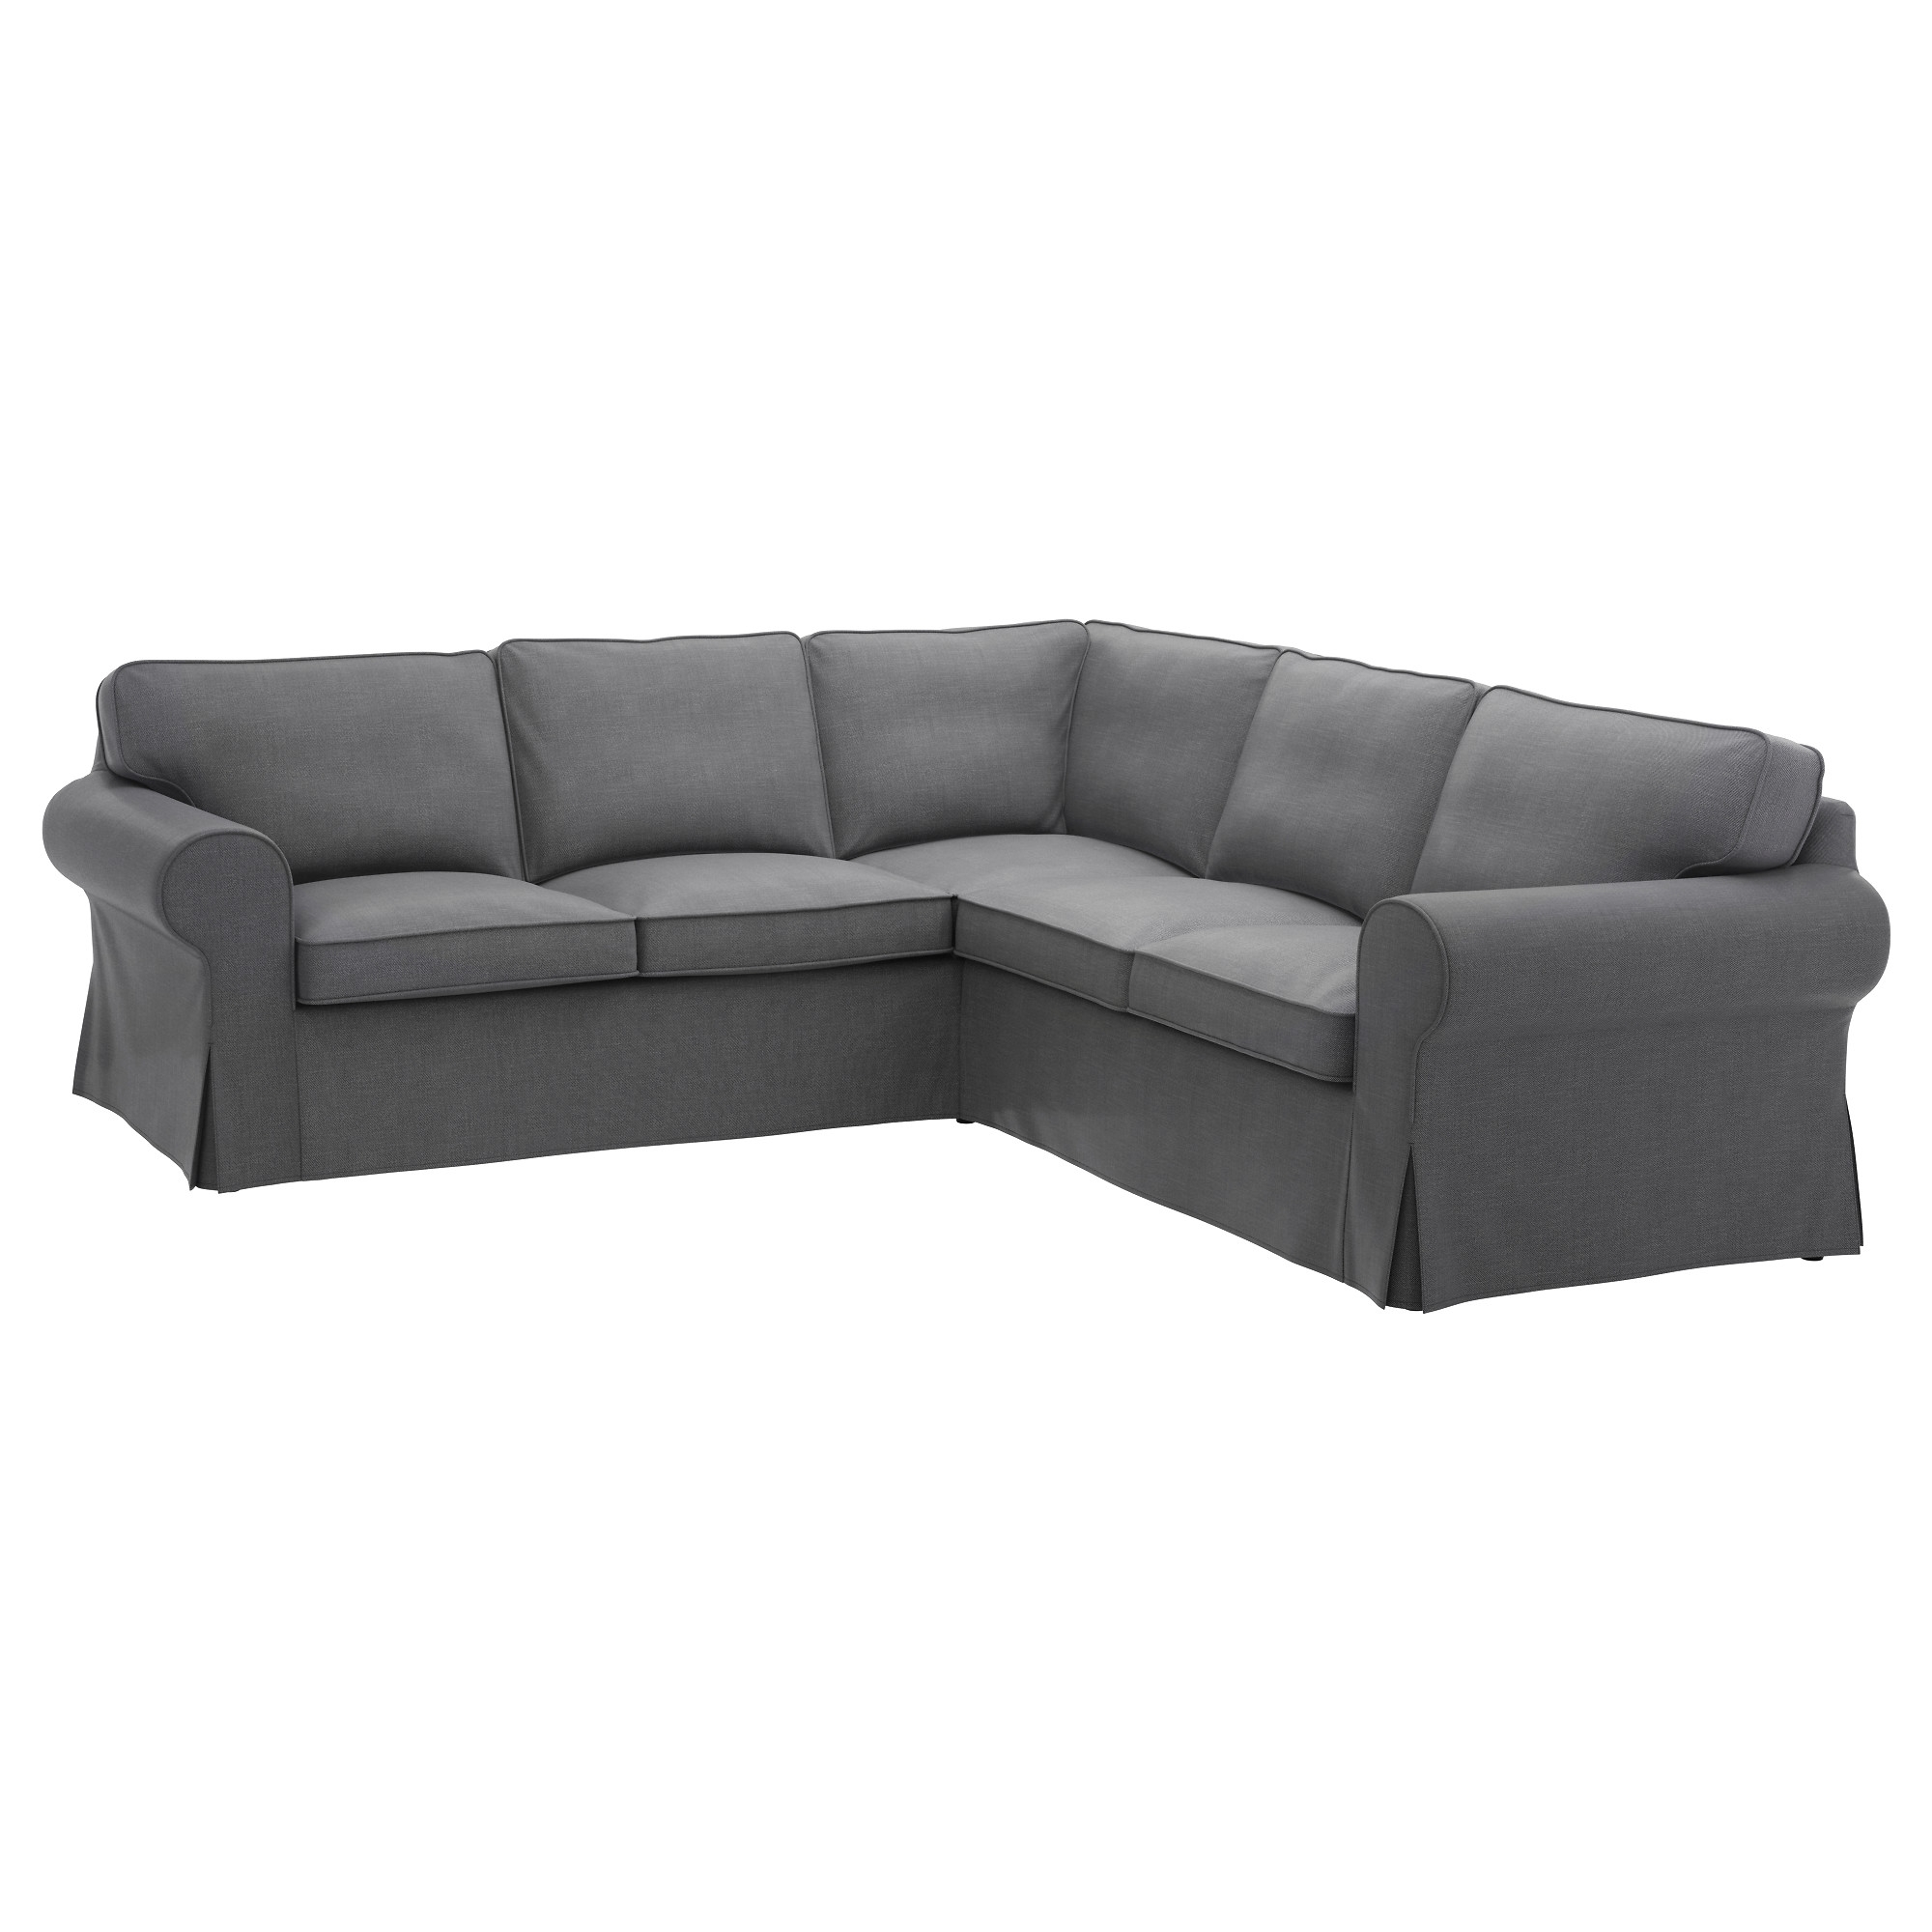 Ikea Chaise Couches Throughout Well Liked Ektorp Sectional, 4 Seat Corner – Nordvalla Dark Gray – Ikea (View 6 of 15)